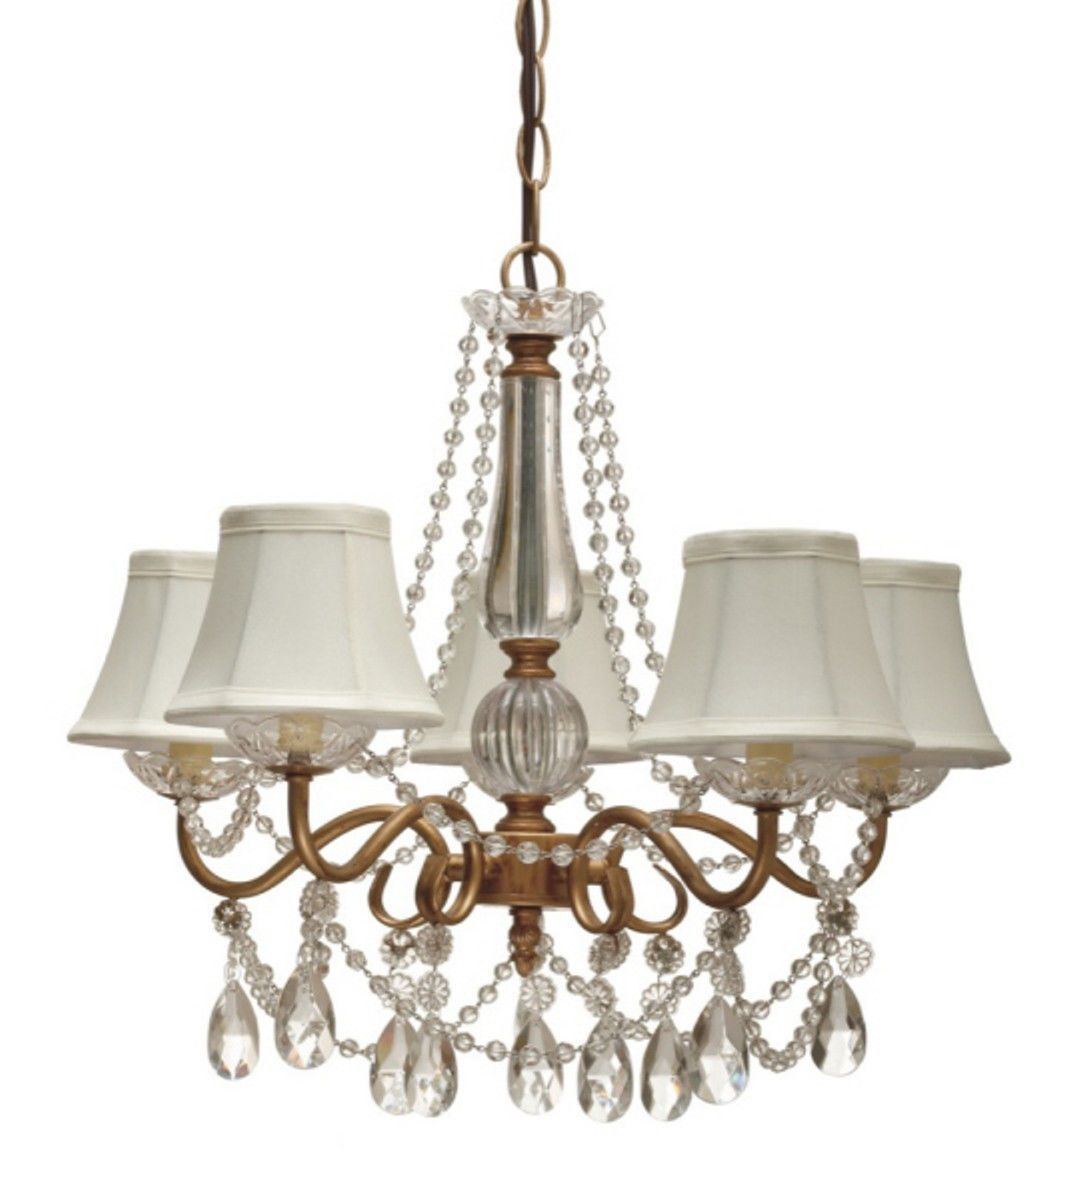 Chandelier Lamp Shades Beaded Kronleuchter Mit Lampenschirm